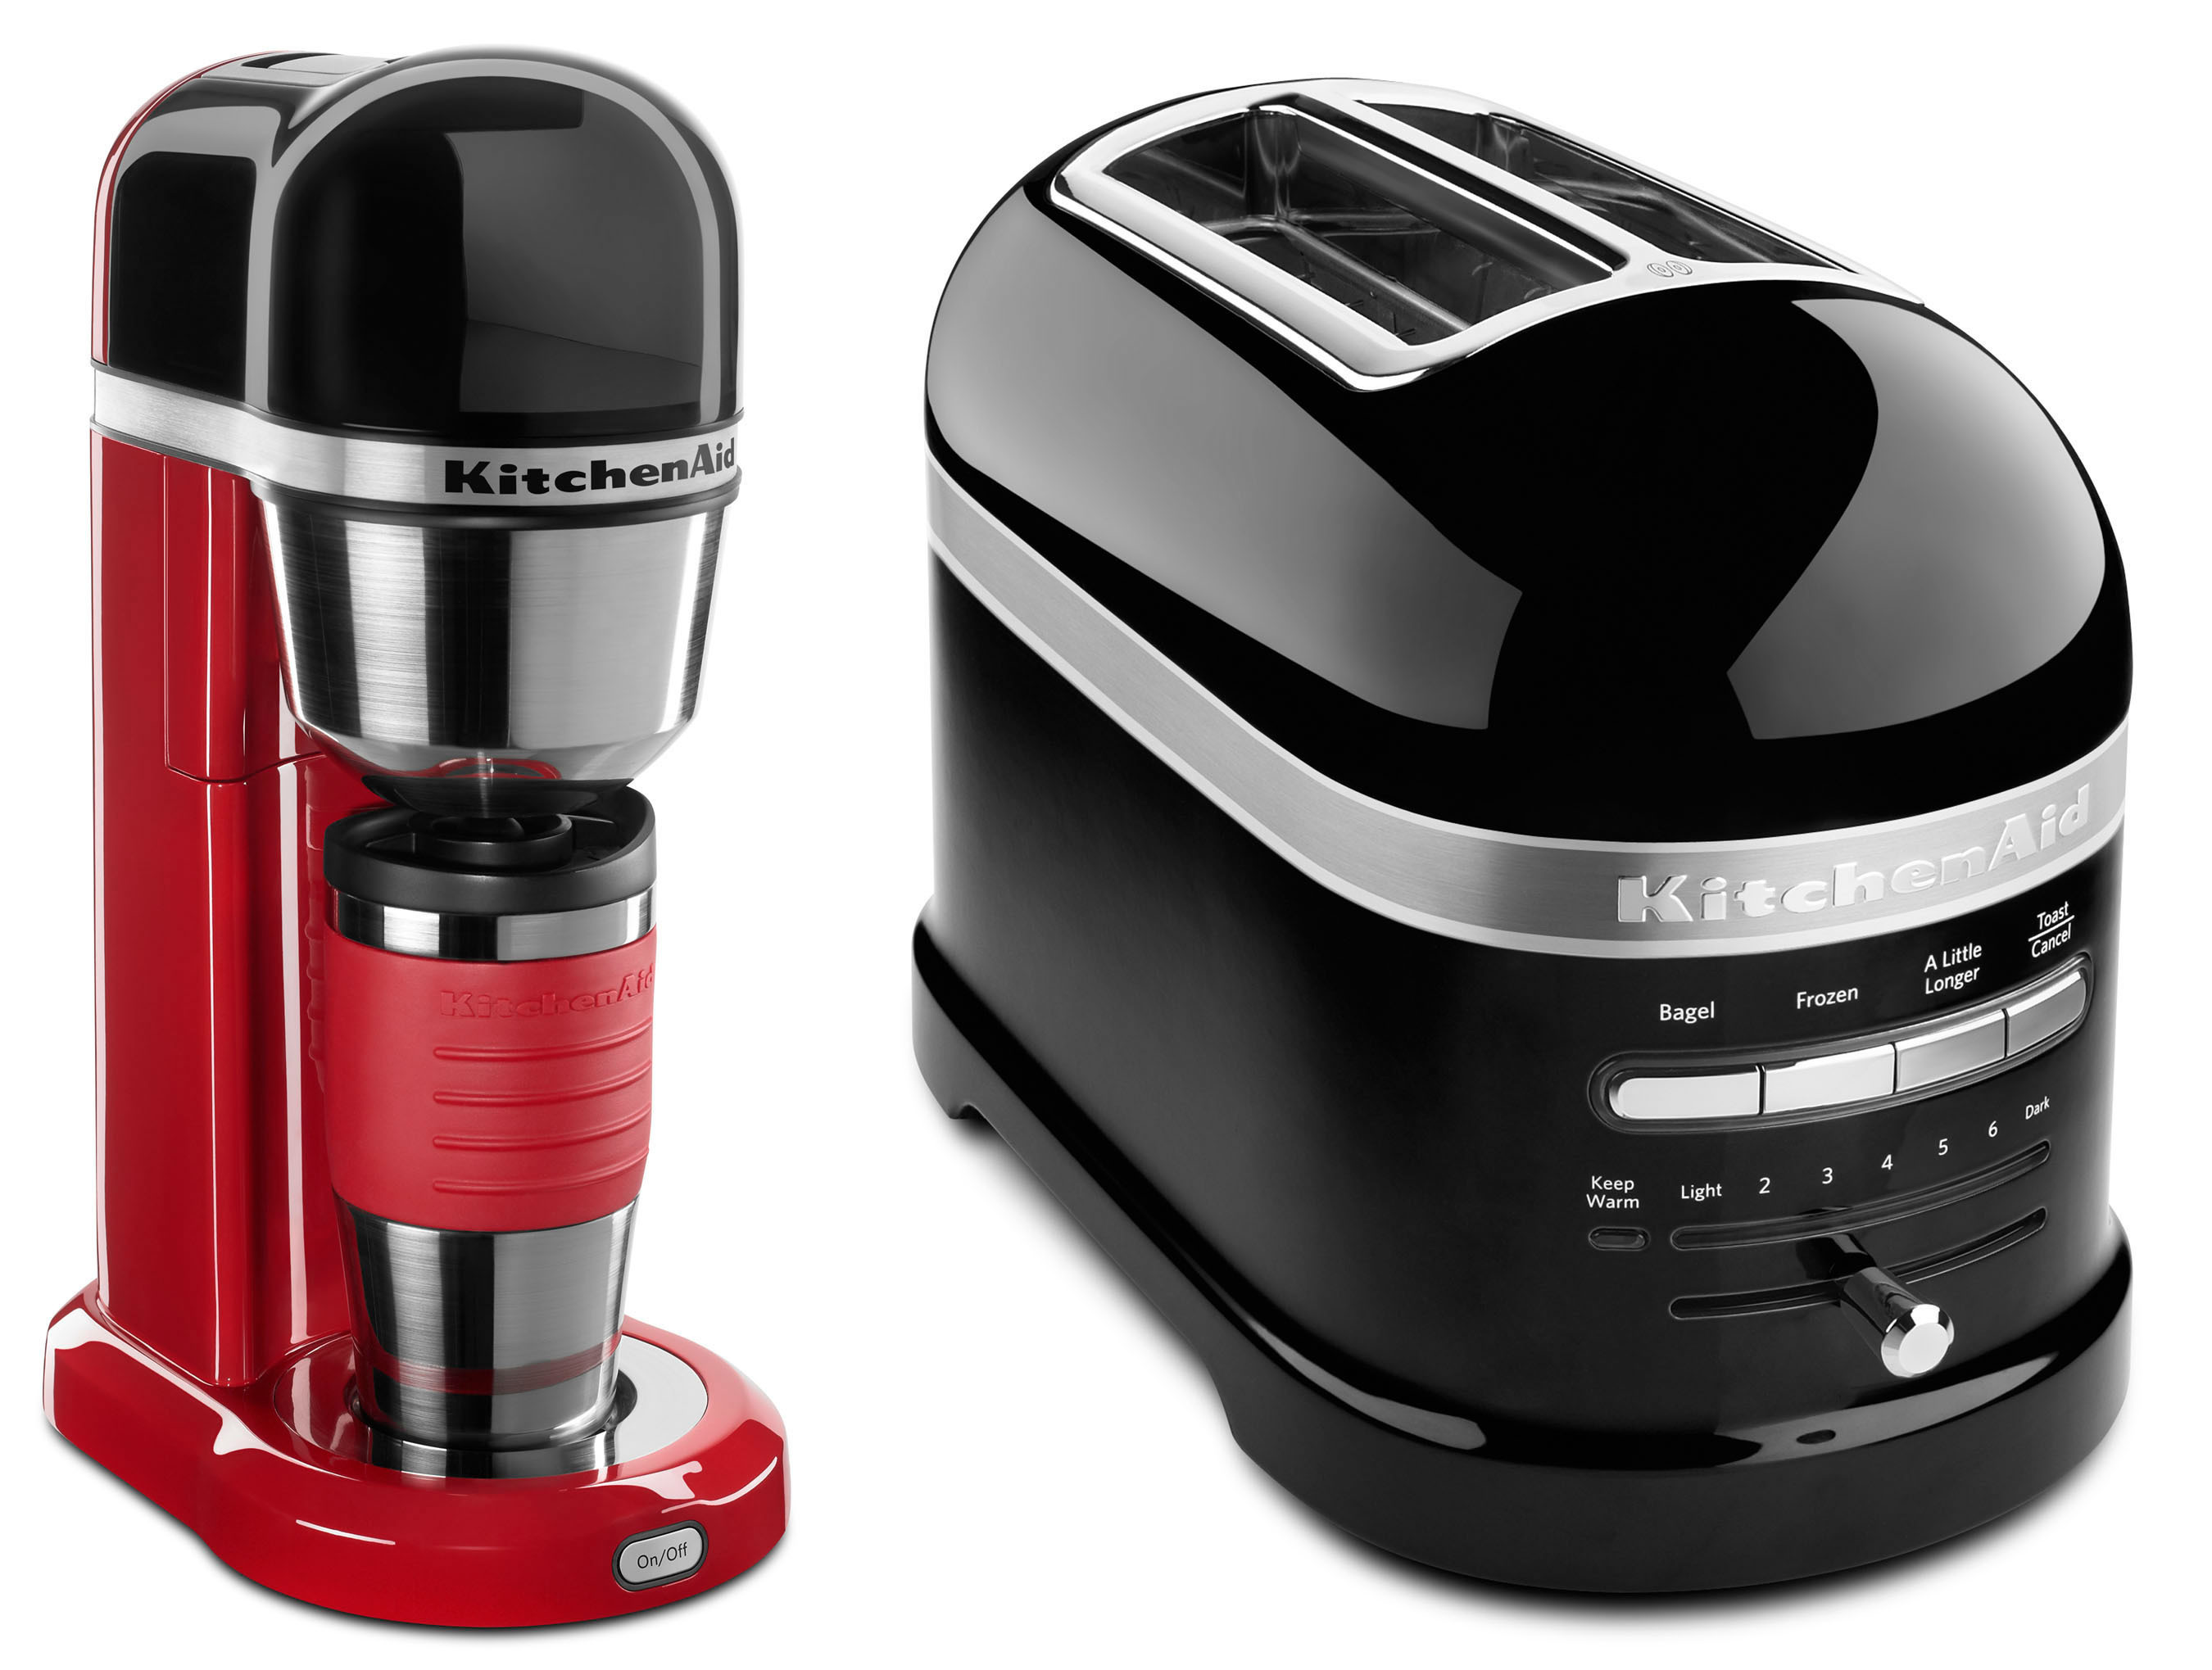 KITCHENAID PERSONAL COFFEE MAKER AND PRO LINE TOASTER